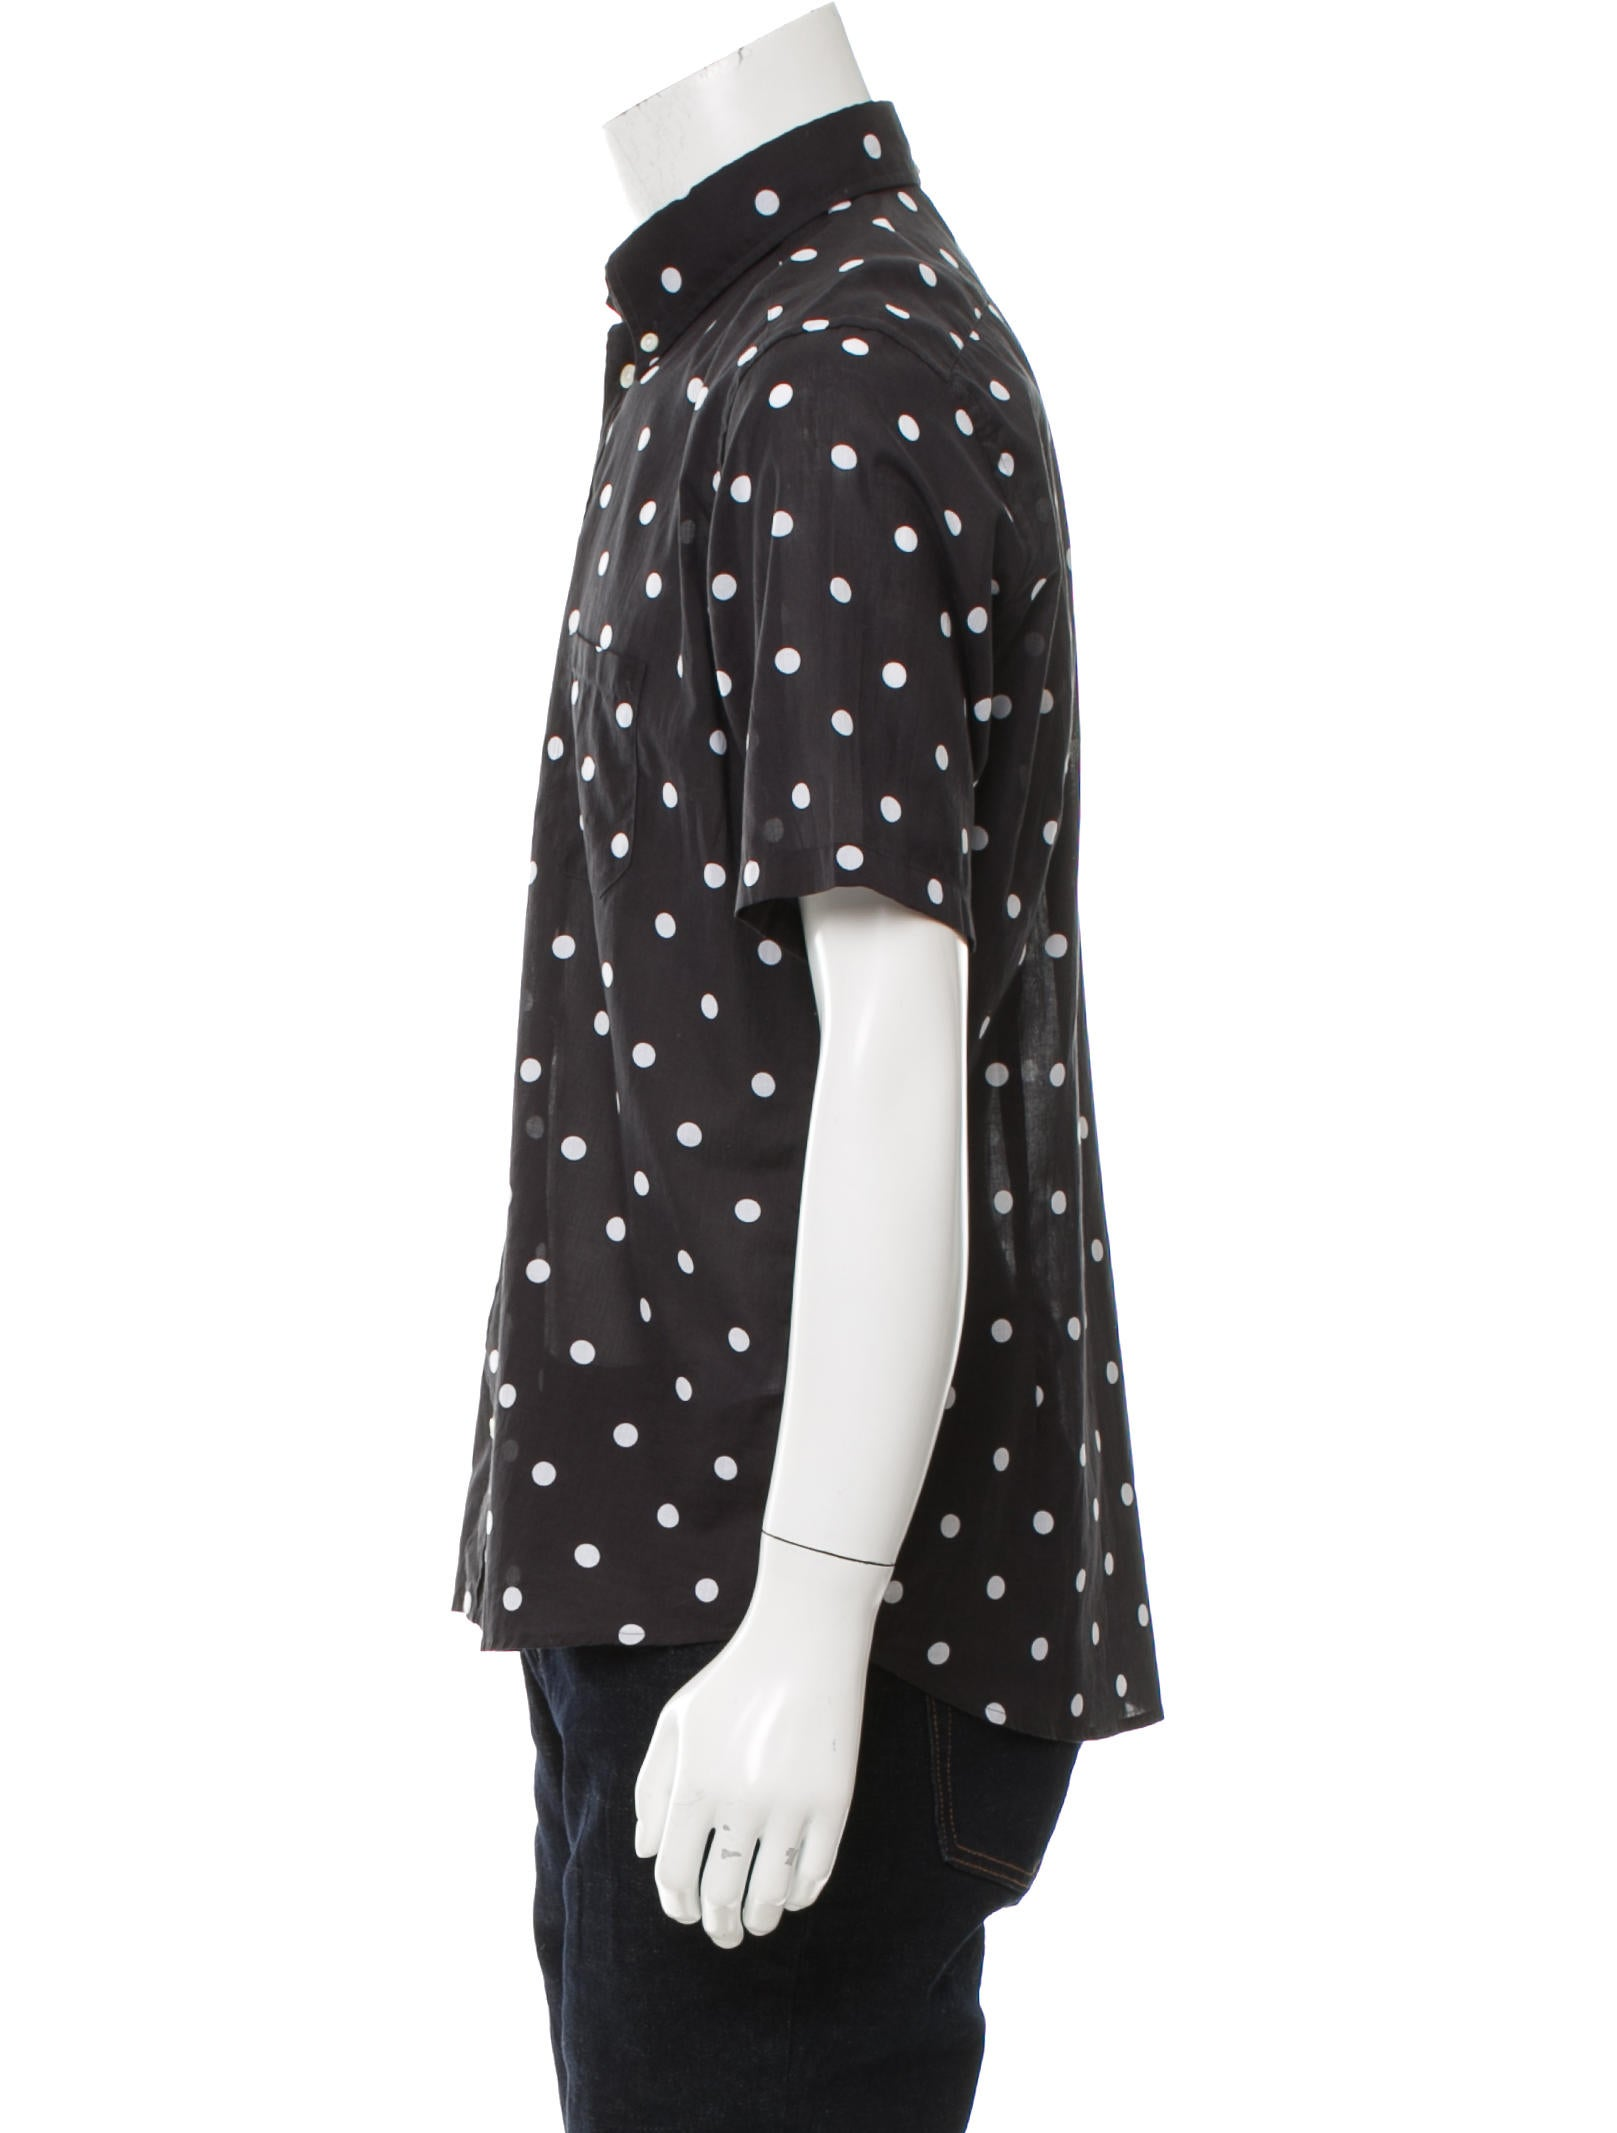 Find black and white polka dot top at ShopStyle. Shop the latest collection of black and white polka dot top from the most popular stores - all in one Comme des Garcons Black Polka Dot Heart Patch T-Shirt $ Get a Sale Alert Free Express Shipping Donna Karan Polka-Dot Button-Down Blouse $ $ Get a Sale Alert Free Shipping $